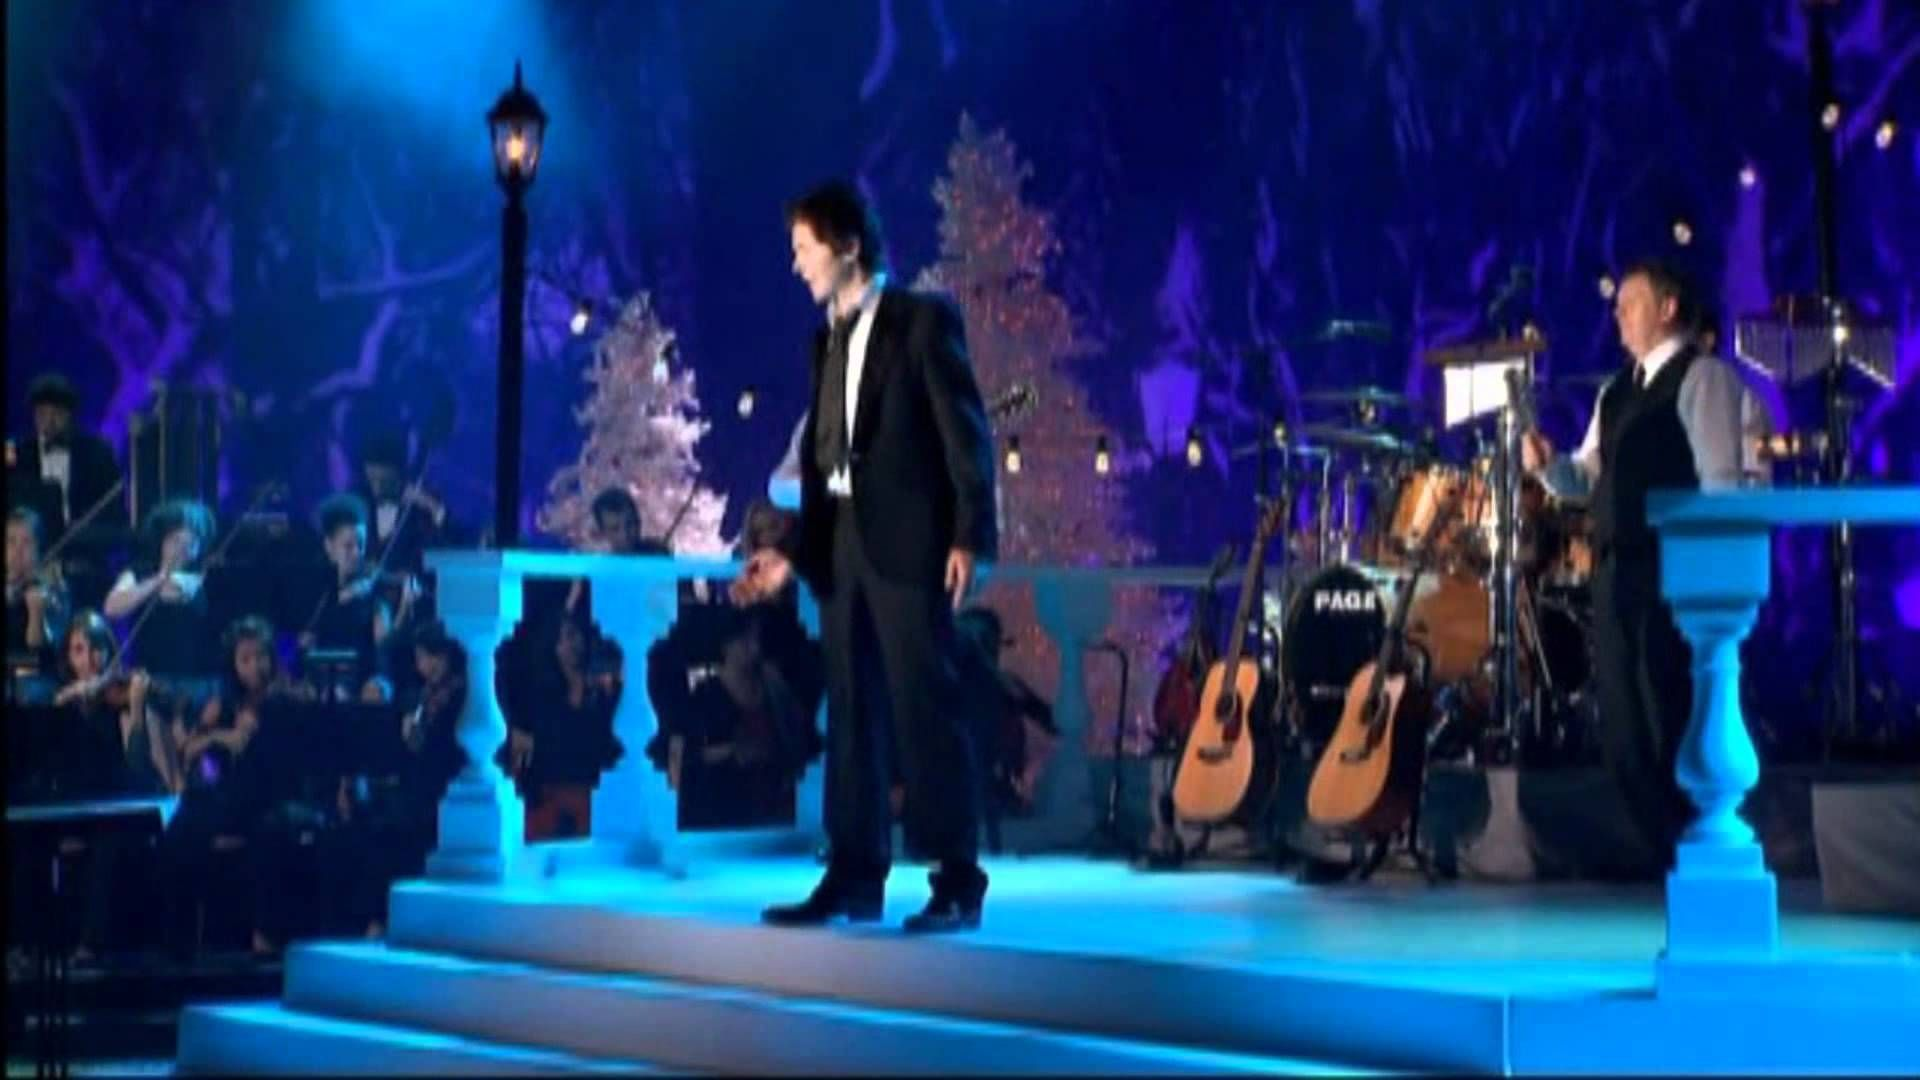 Celtic Thunder Christmas.Our First Christmas Together Celtic Thunder In 2019